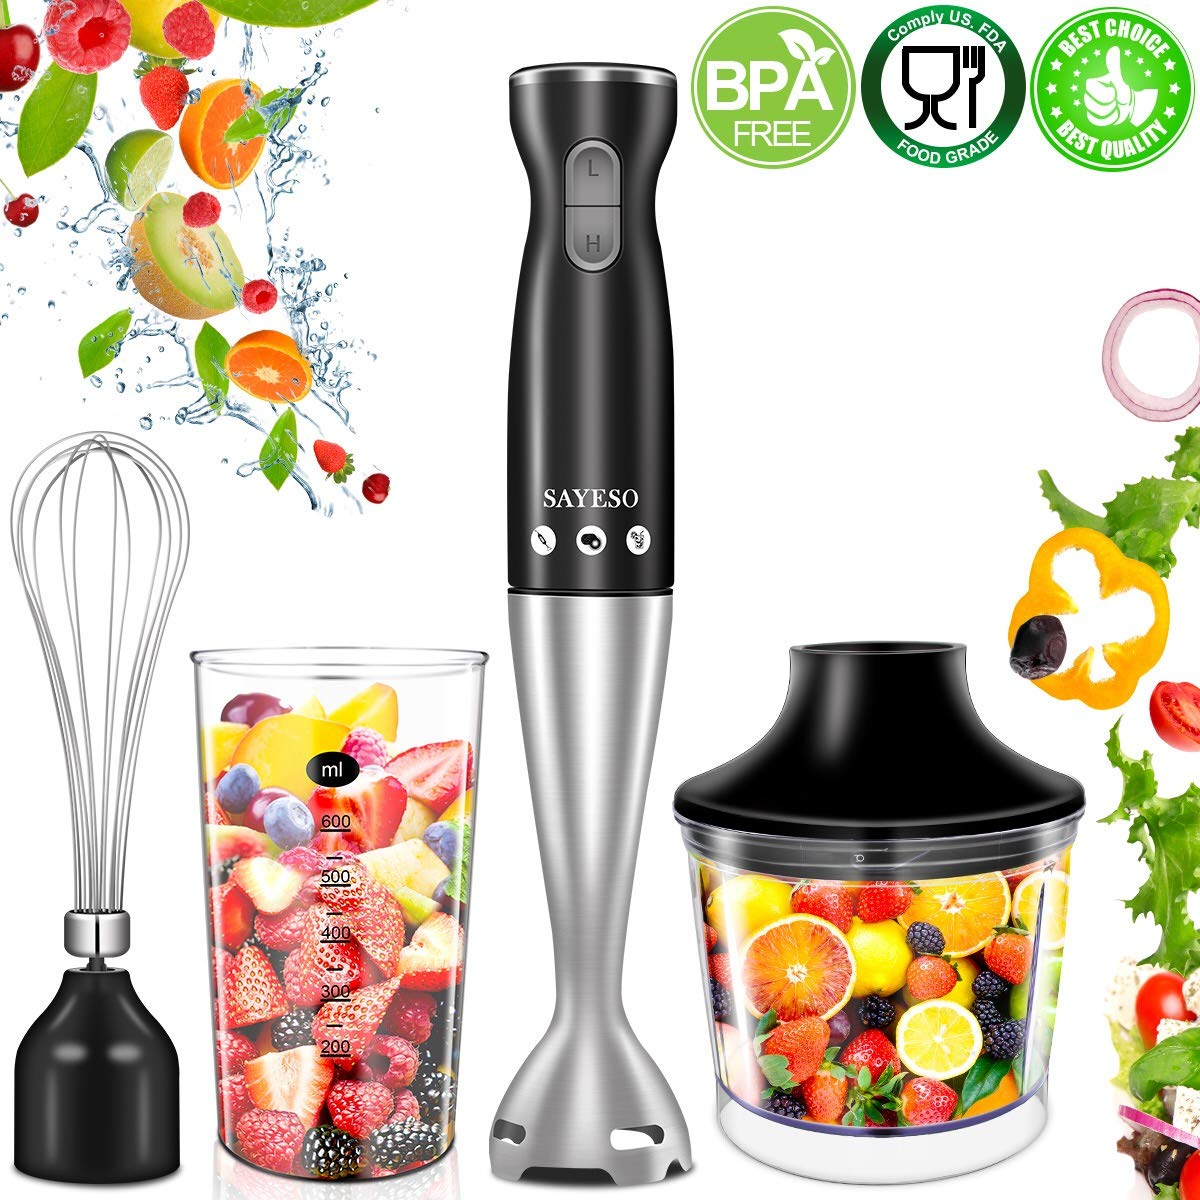 Hand Blender, (New Version) 4-in-1 Multifunctional Electric Immersion Blender with Ballon Whisk, 16oz Chopper Bowl and BPA-Free Beaker for Baby Food, Shakes, Smoothies, Sauces, Soup and More [FDA/ETL Approved] SAYESO